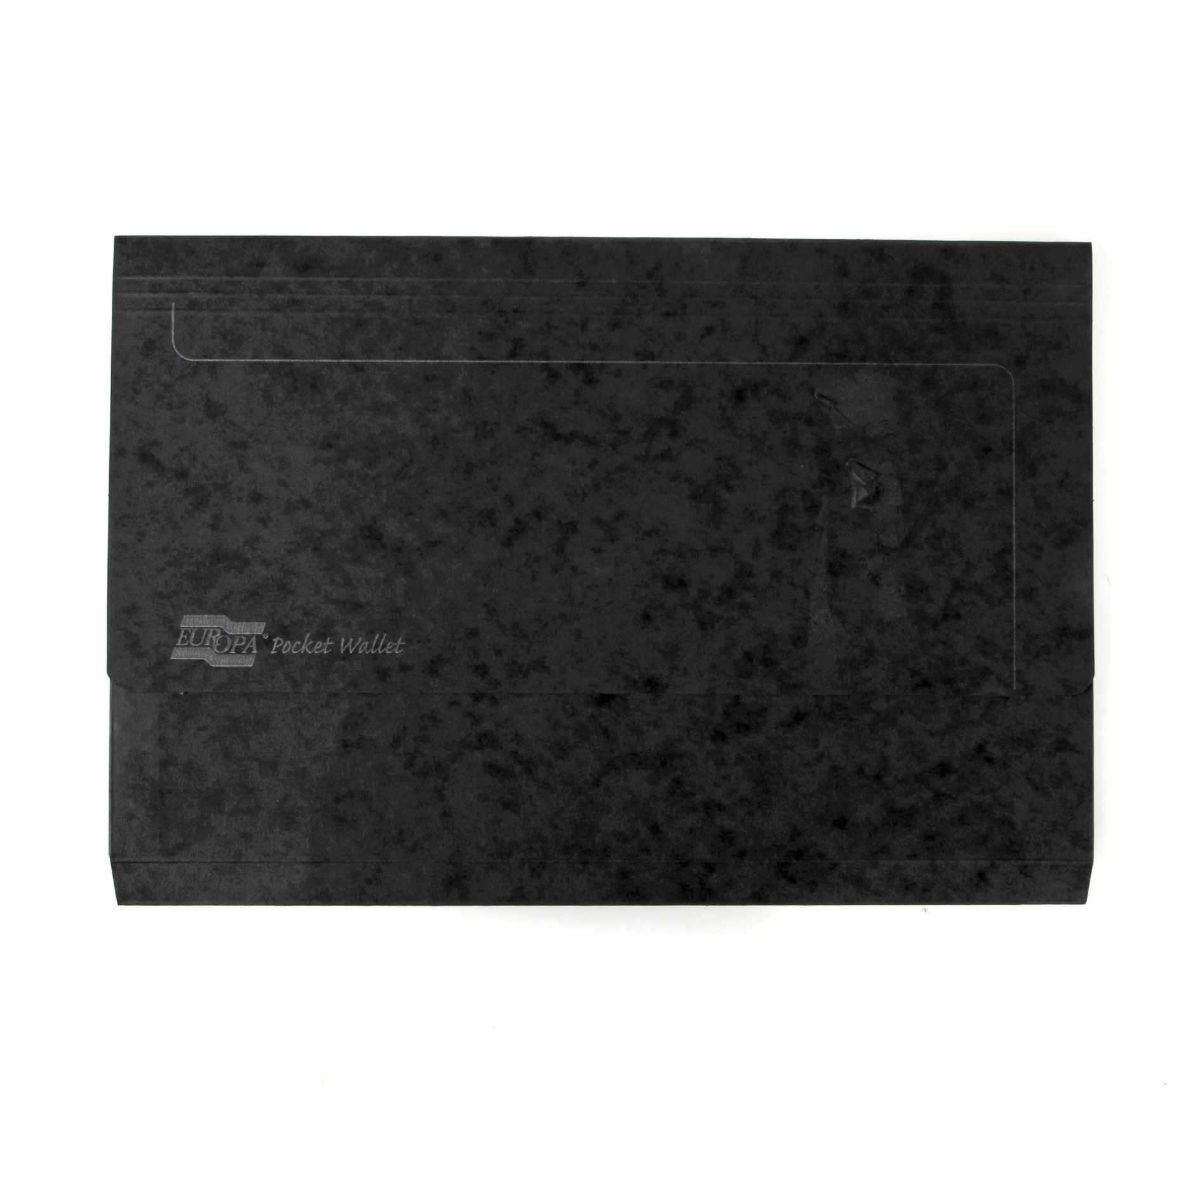 Europa Pocket Wallets Foolscap Pack of 25